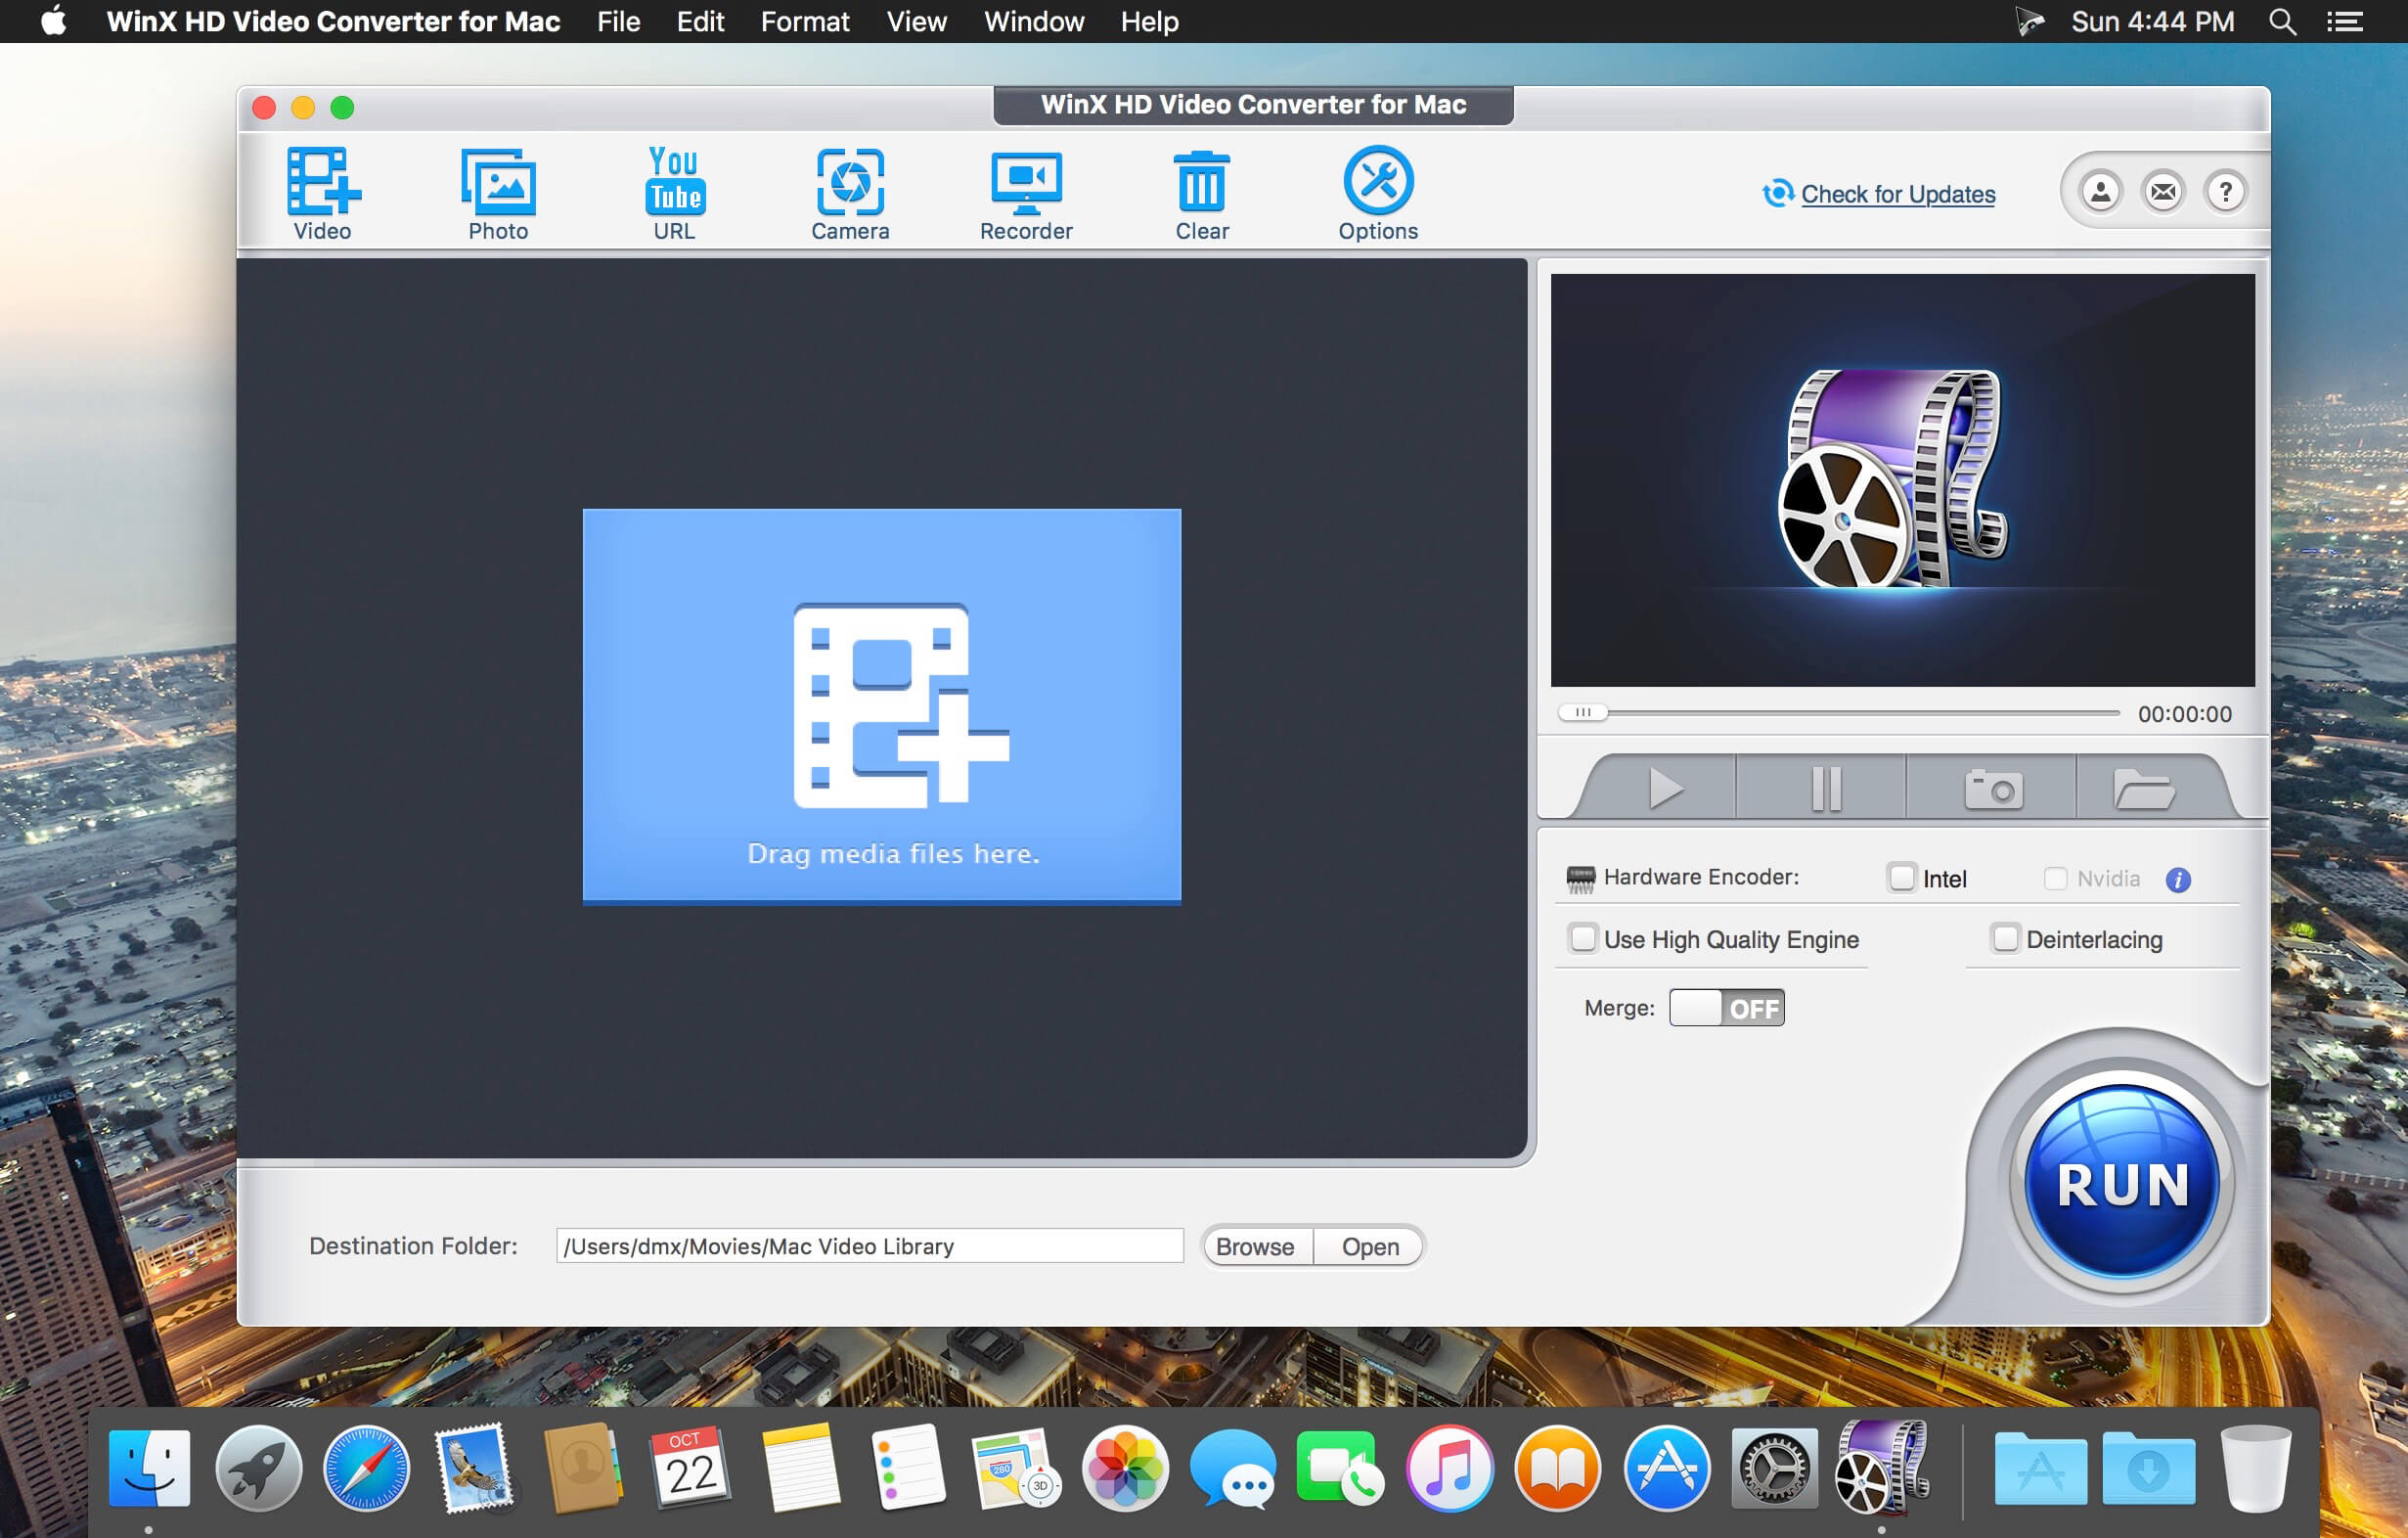 WinX HD Video Converter mac